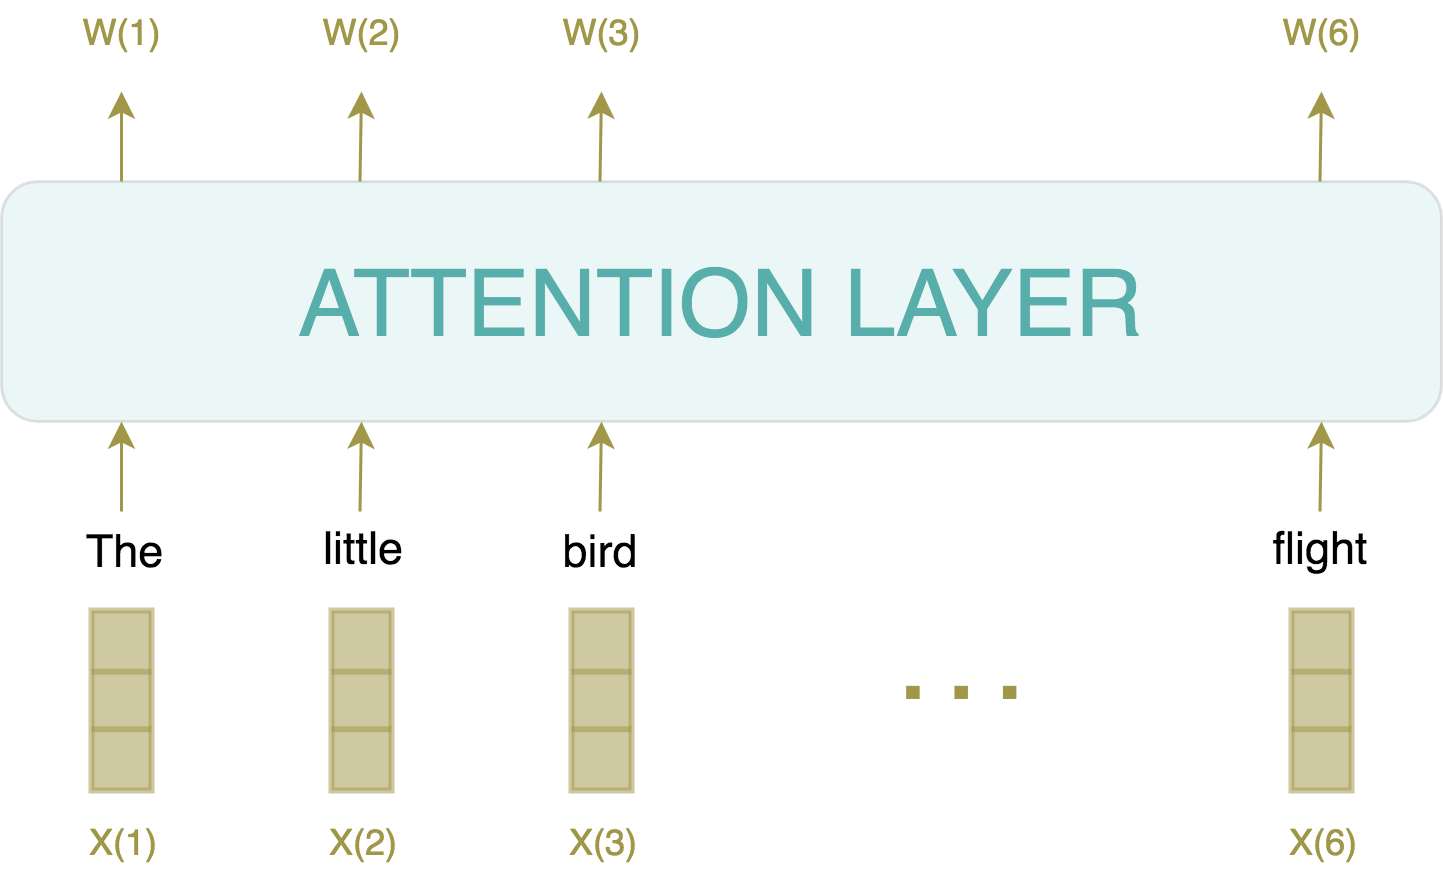 self-attention layer in NLP Transformer models